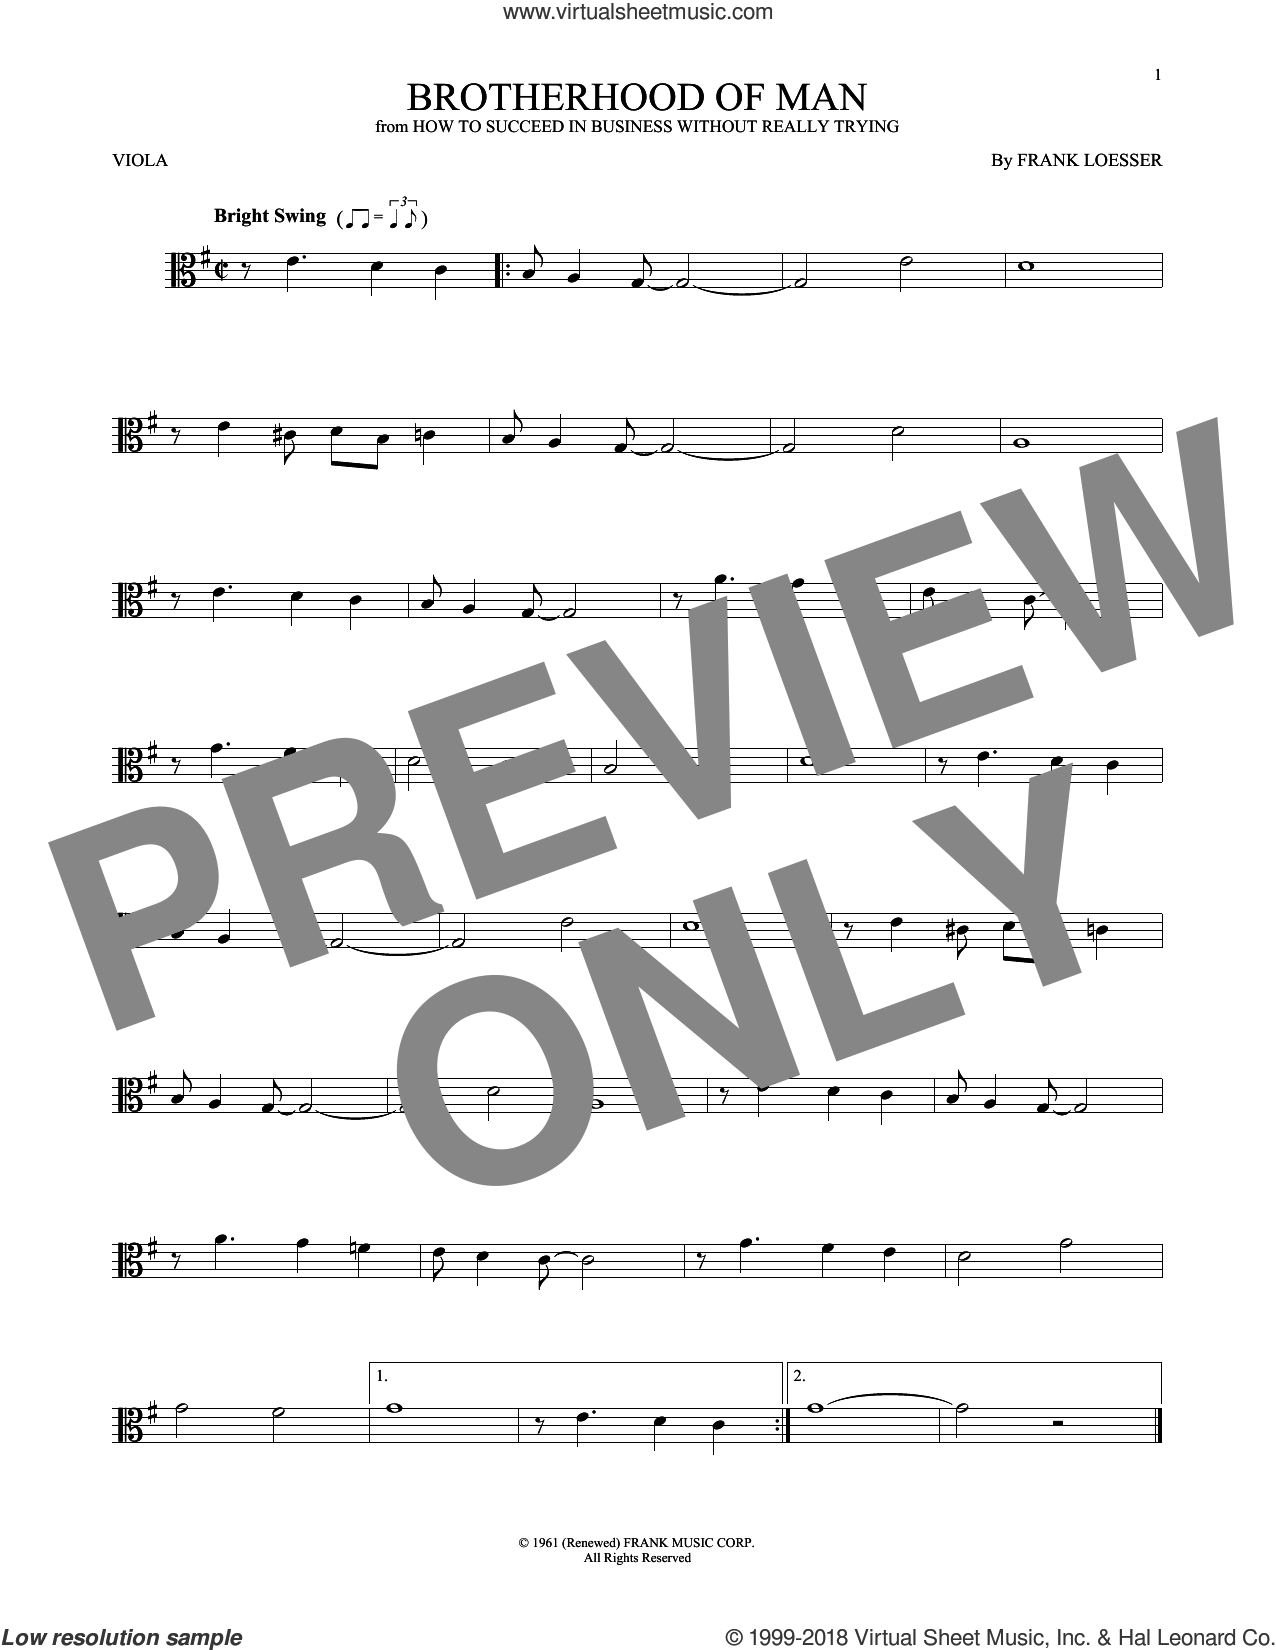 Brotherhood Of Man sheet music for viola solo by Frank Loesser, intermediate skill level